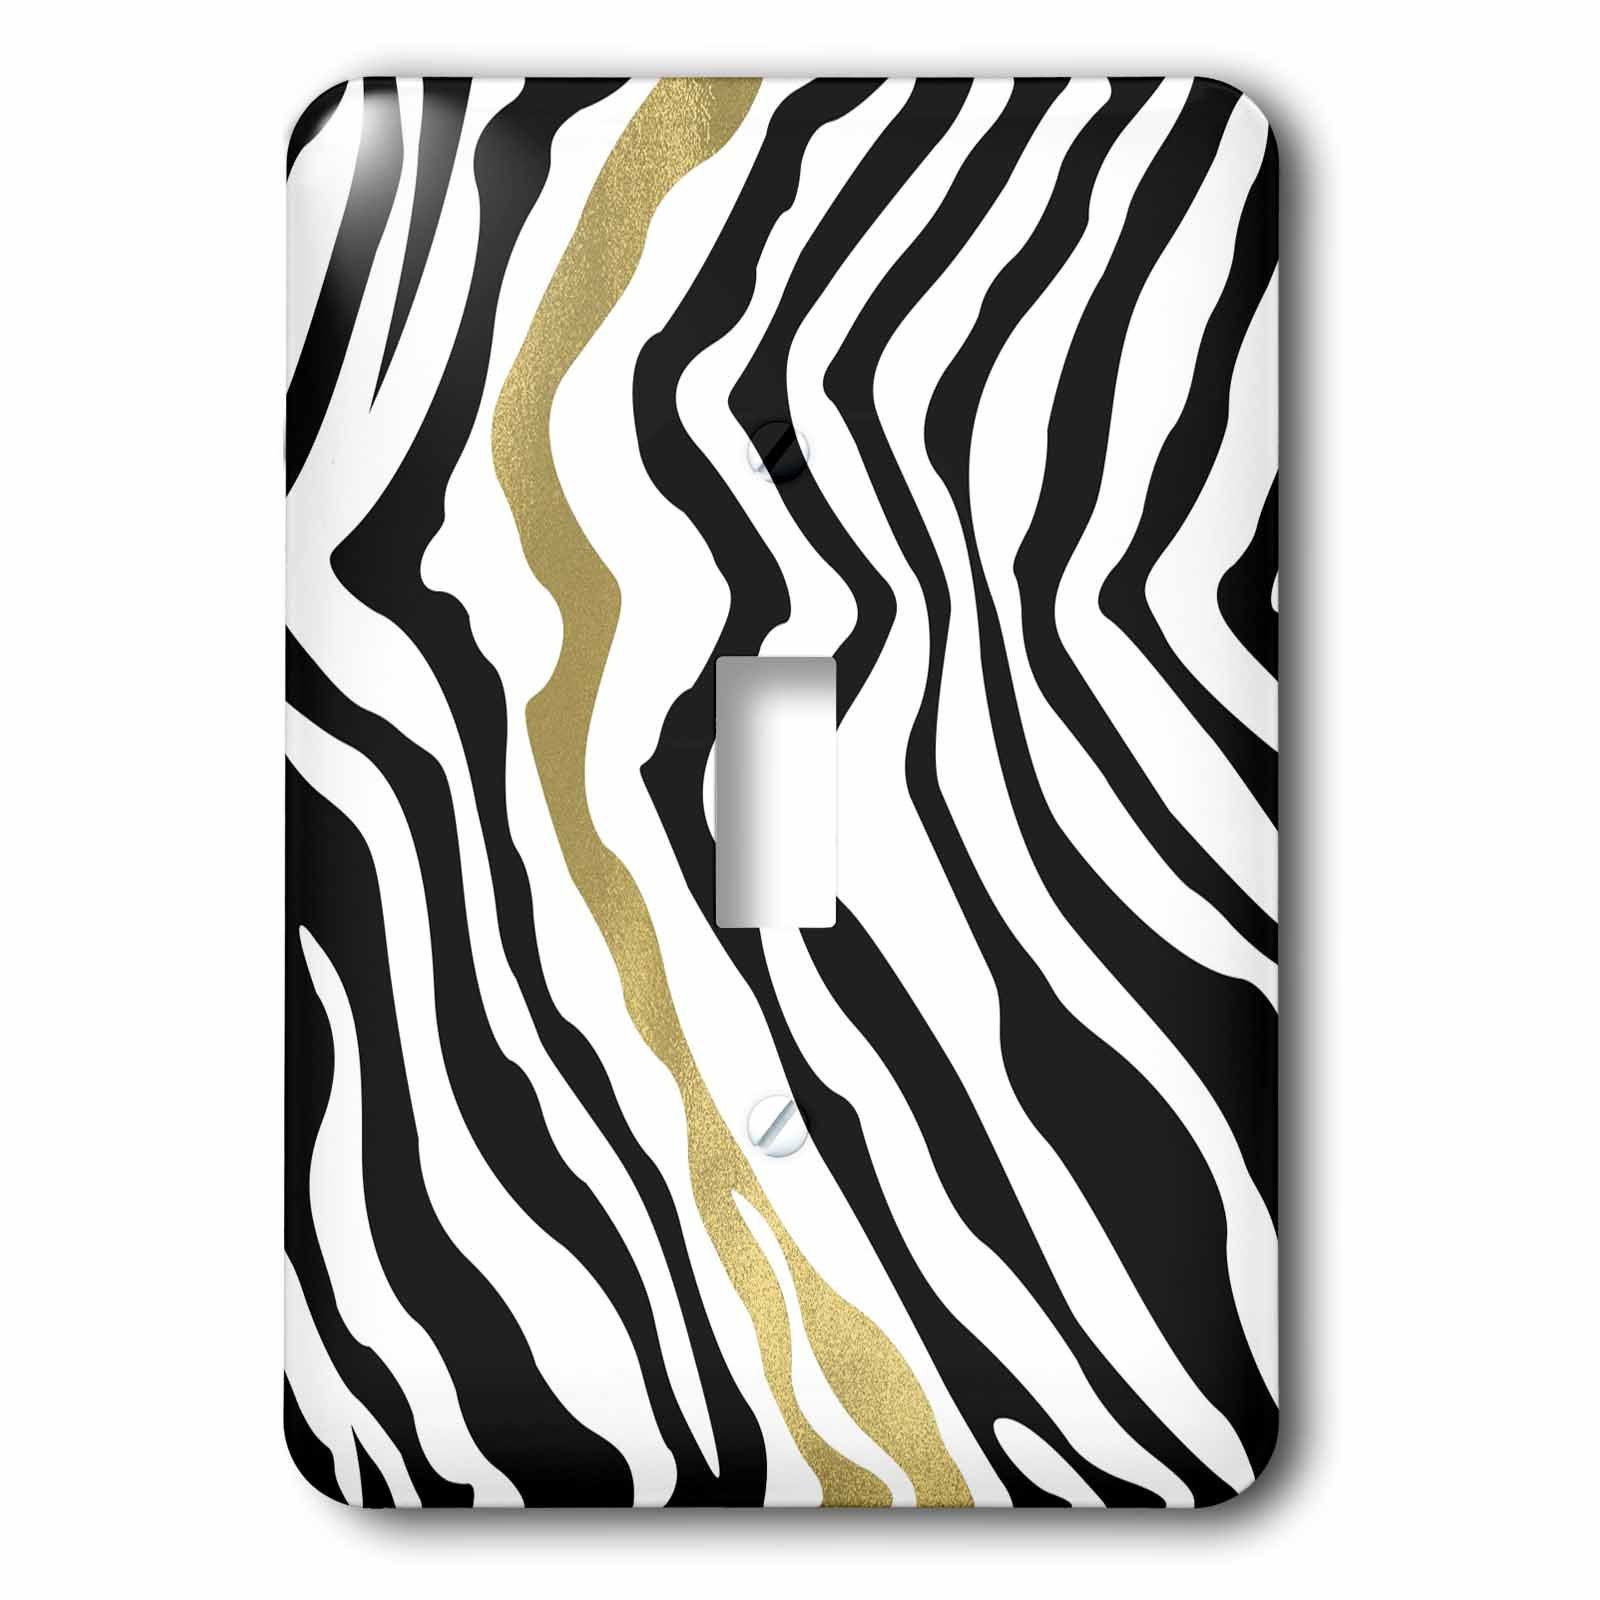 3dRose PS Animal Print - Black Gold Glam Zebra Stripes - Light Switch Covers - single toggle switch (lsp_265706_1)